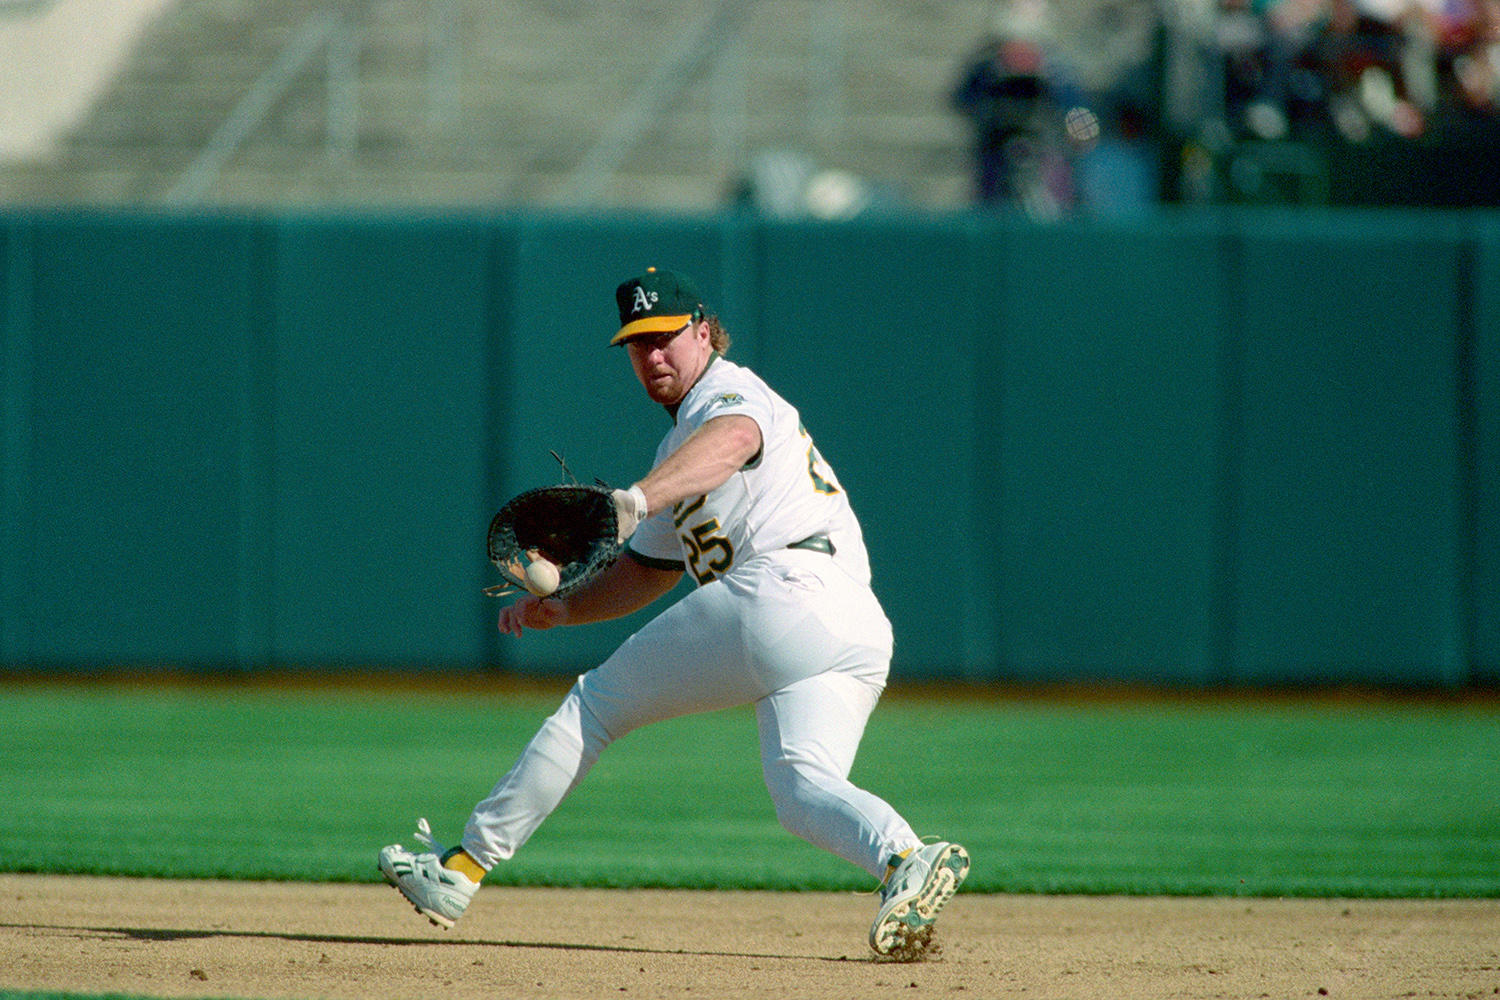 Mark McGwire started his career as a third baseman but quickly moved to first base, where he won a Gold Glove Award in 1990. (Brad Mangin / National Baseball Hall of Fame)